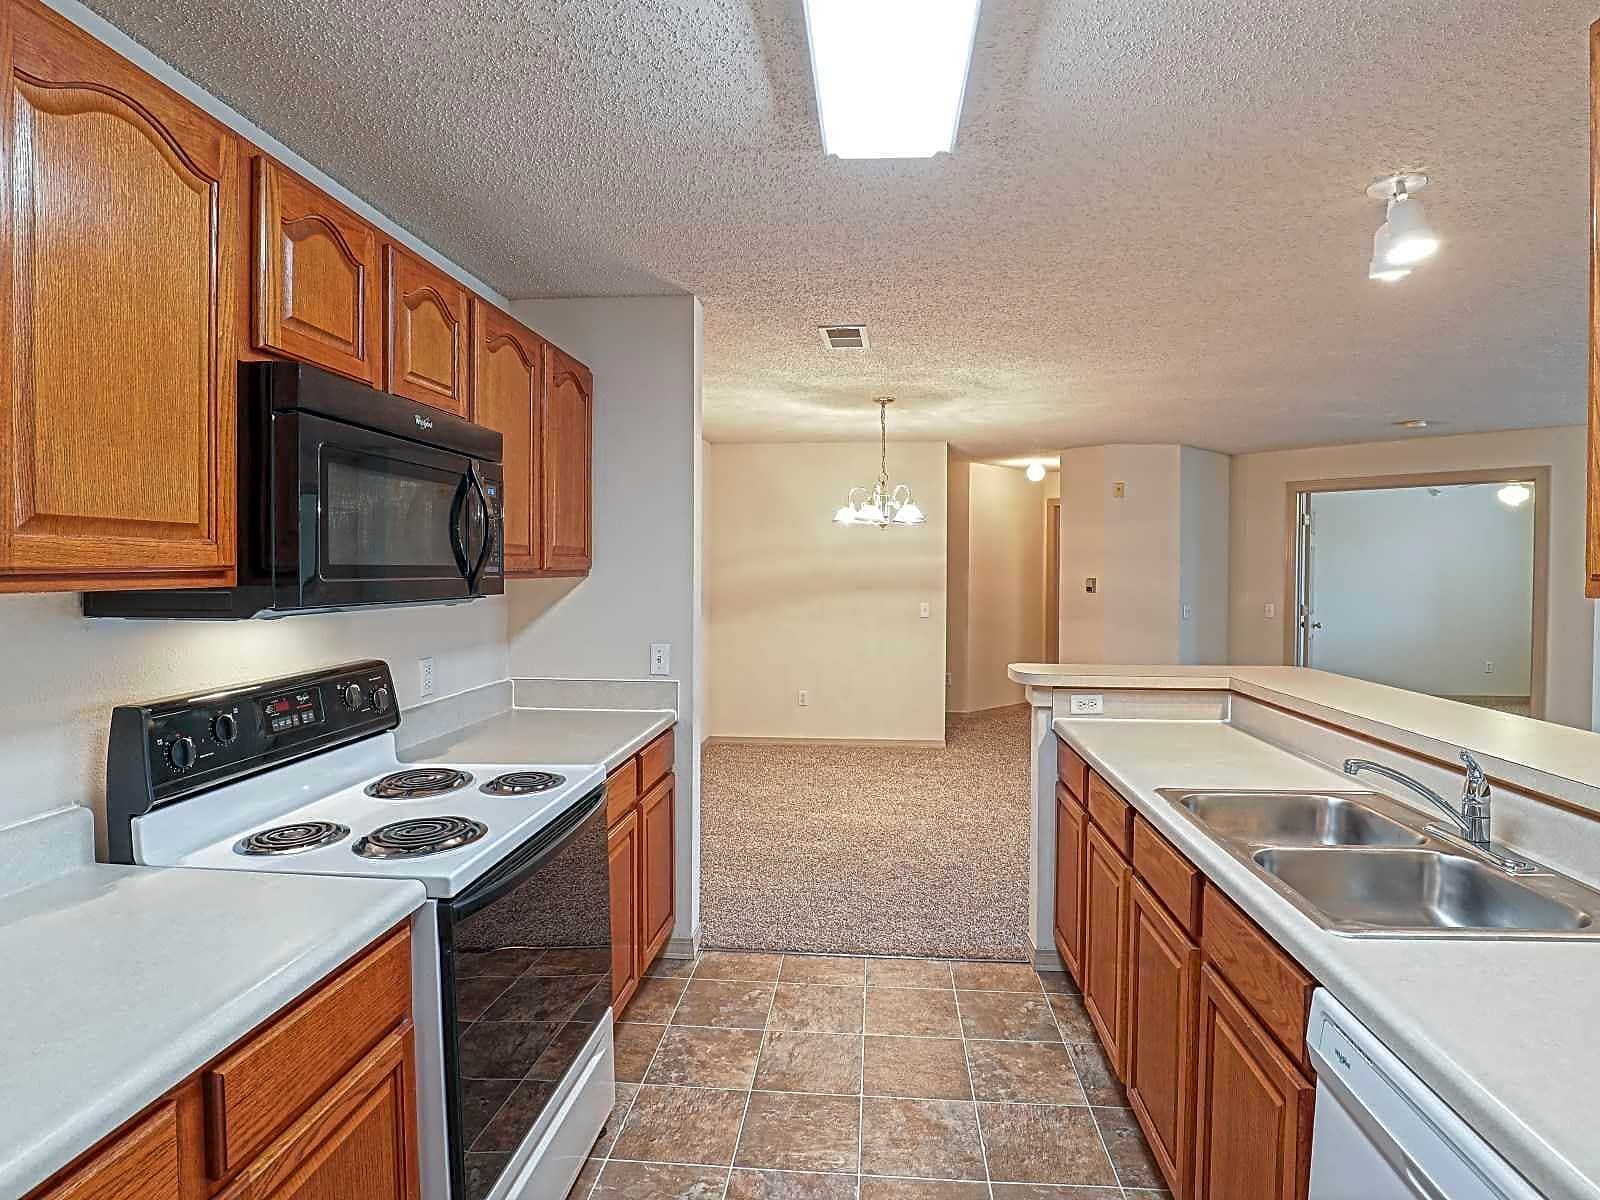 Apartments Near WSU East Hampton Estates for Wichita State University Students in Wichita, KS